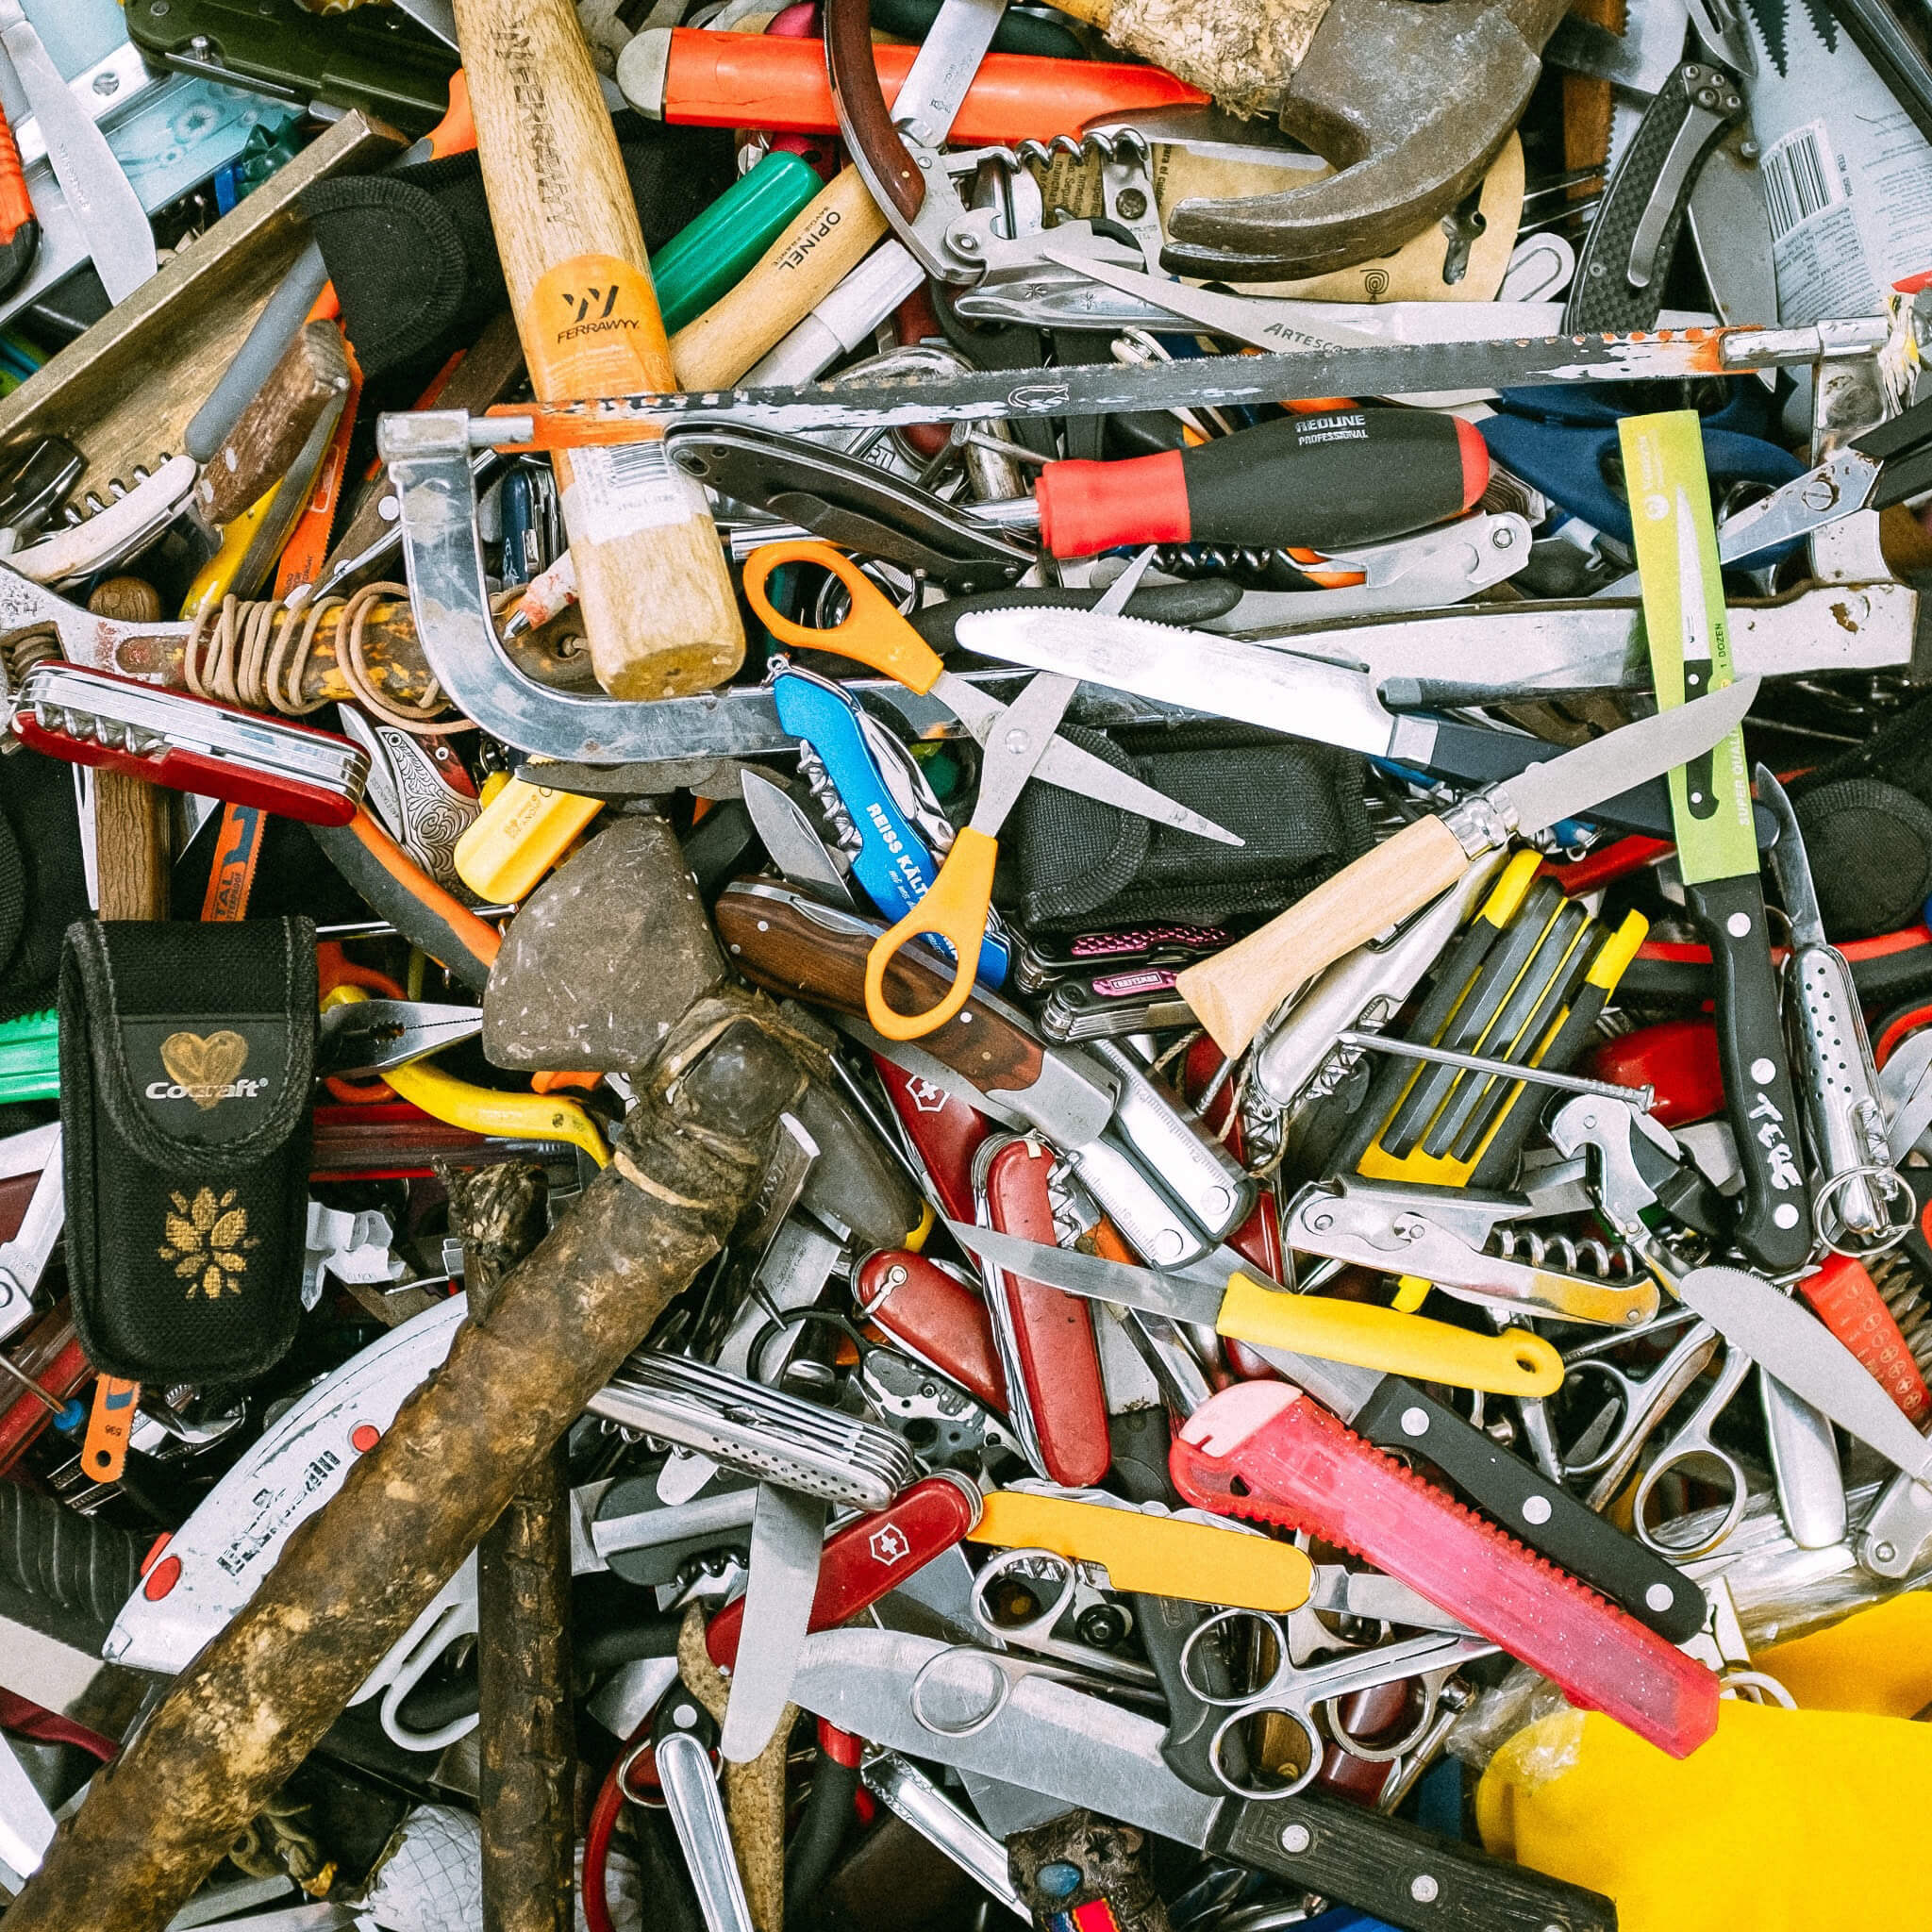 if you're living in clutter, you'll definitely want to look into hiring a professional to get you organized.